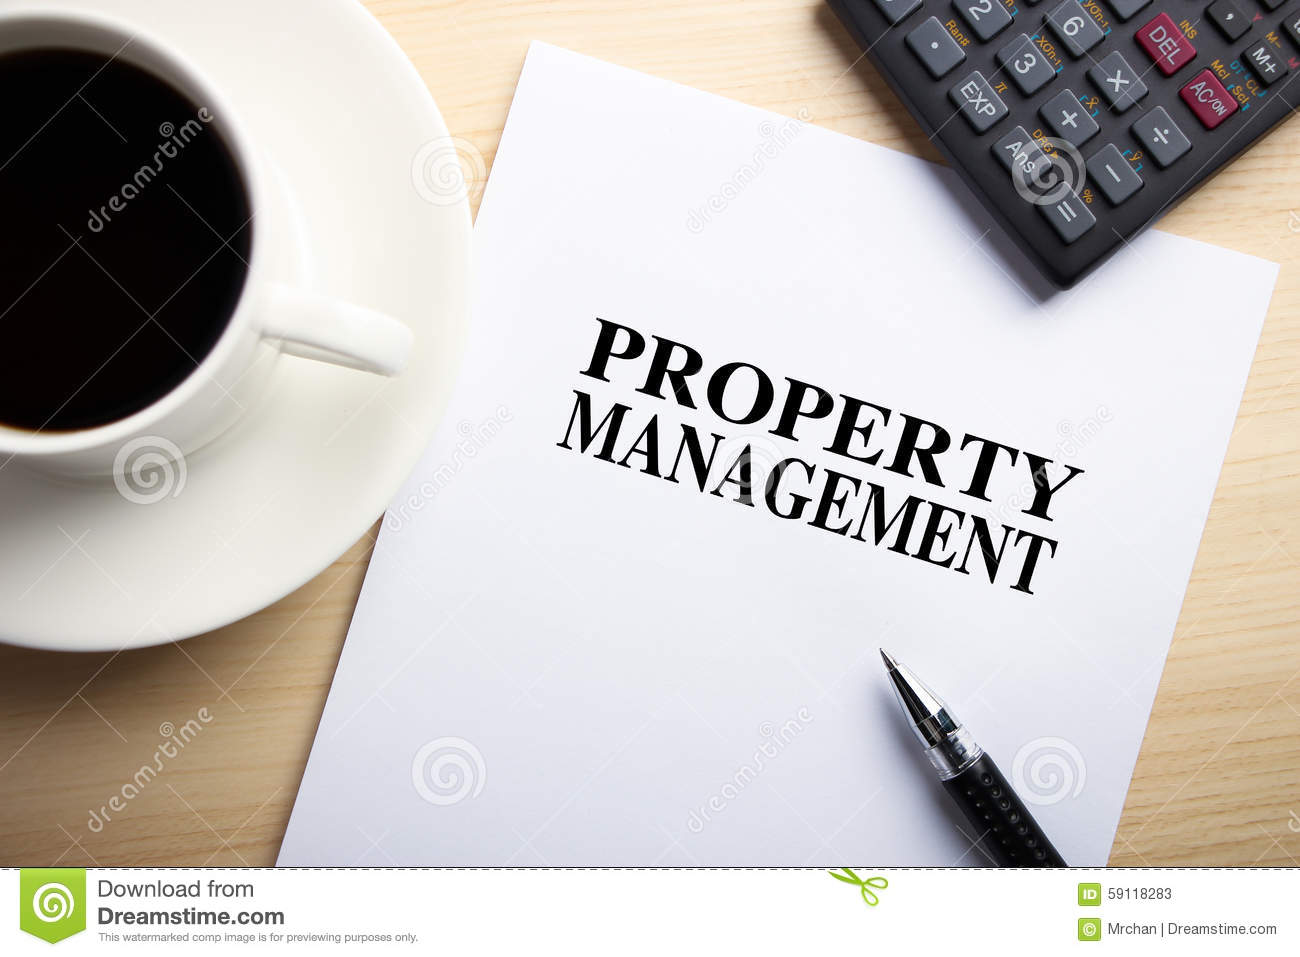 An Experienced Senior Housing and Property Management Company